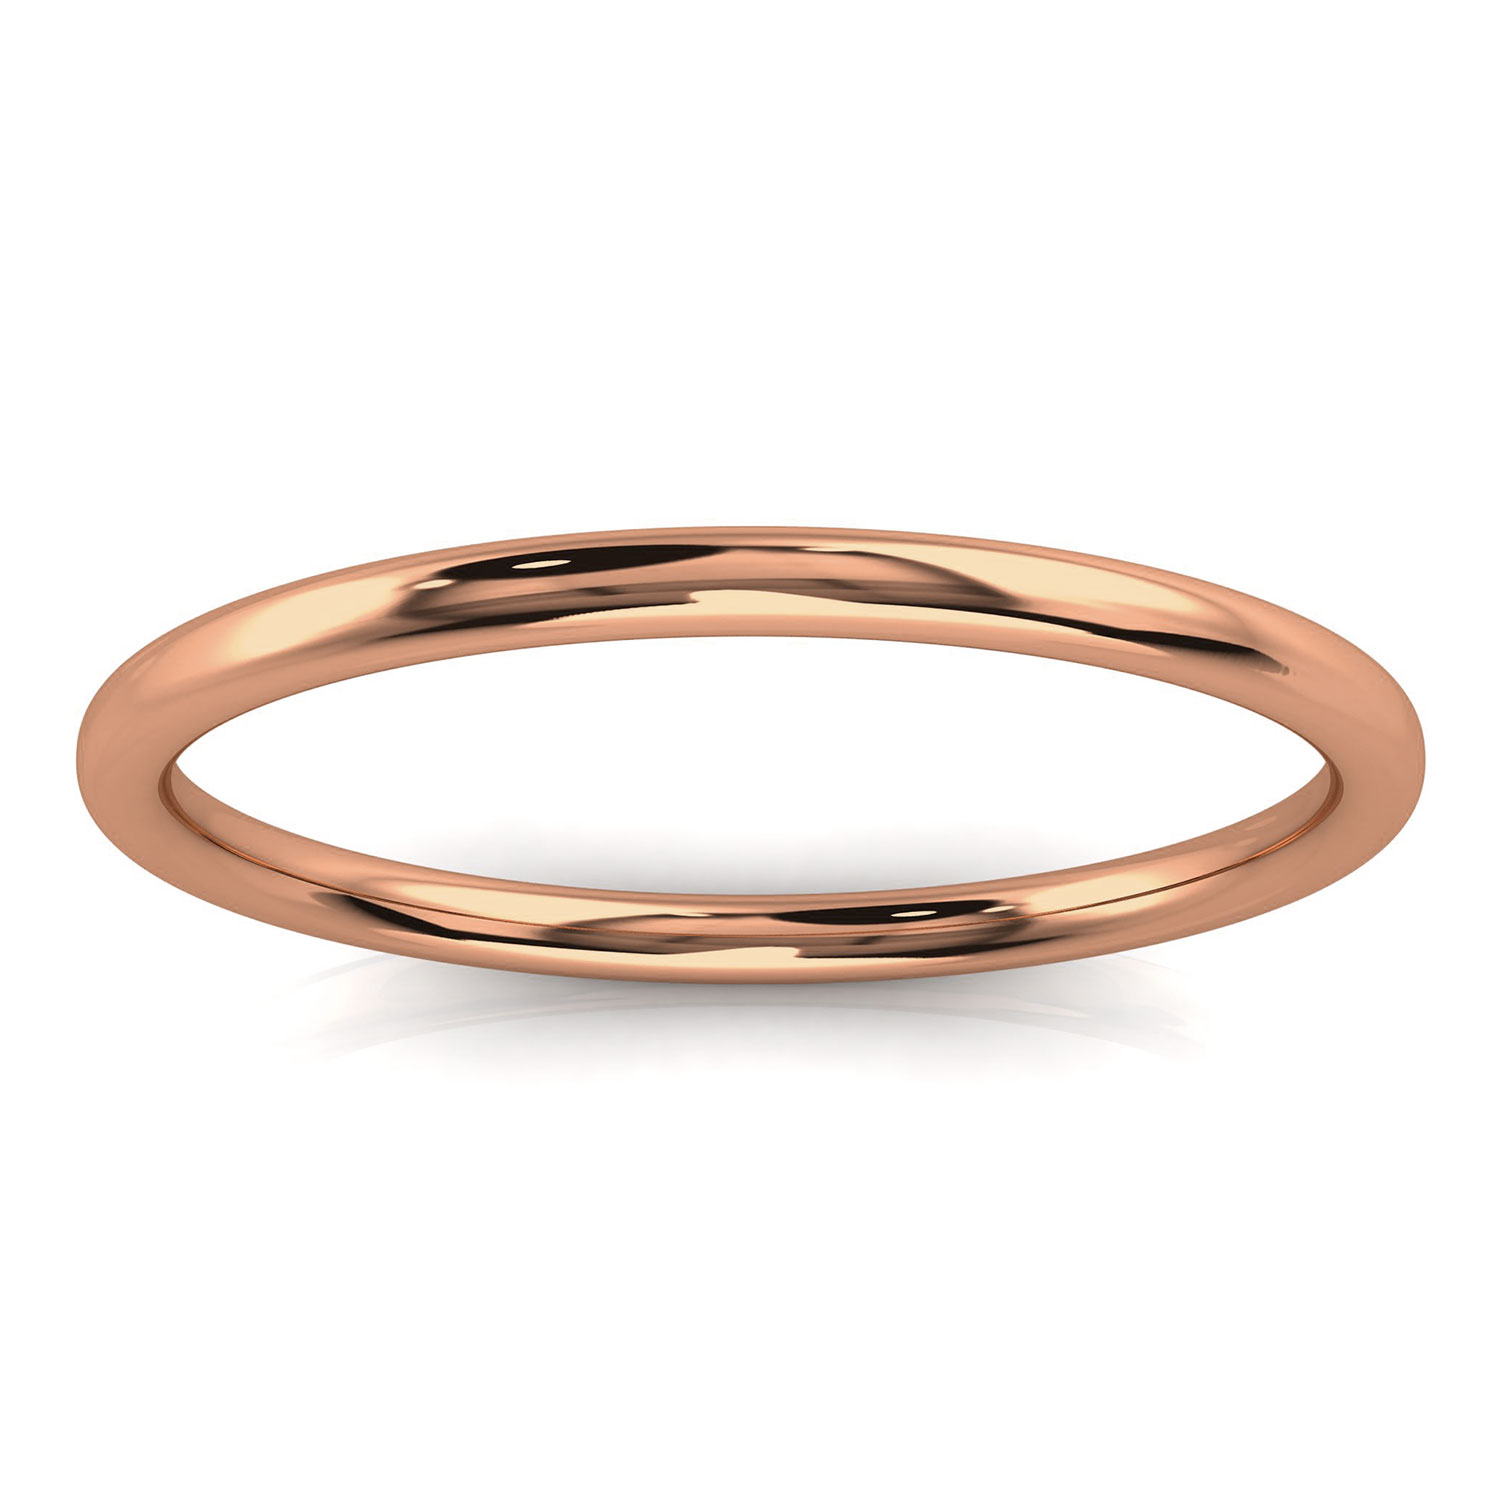 14K Rose Gold Plain Petite Nora Band 1.4 MM Wide